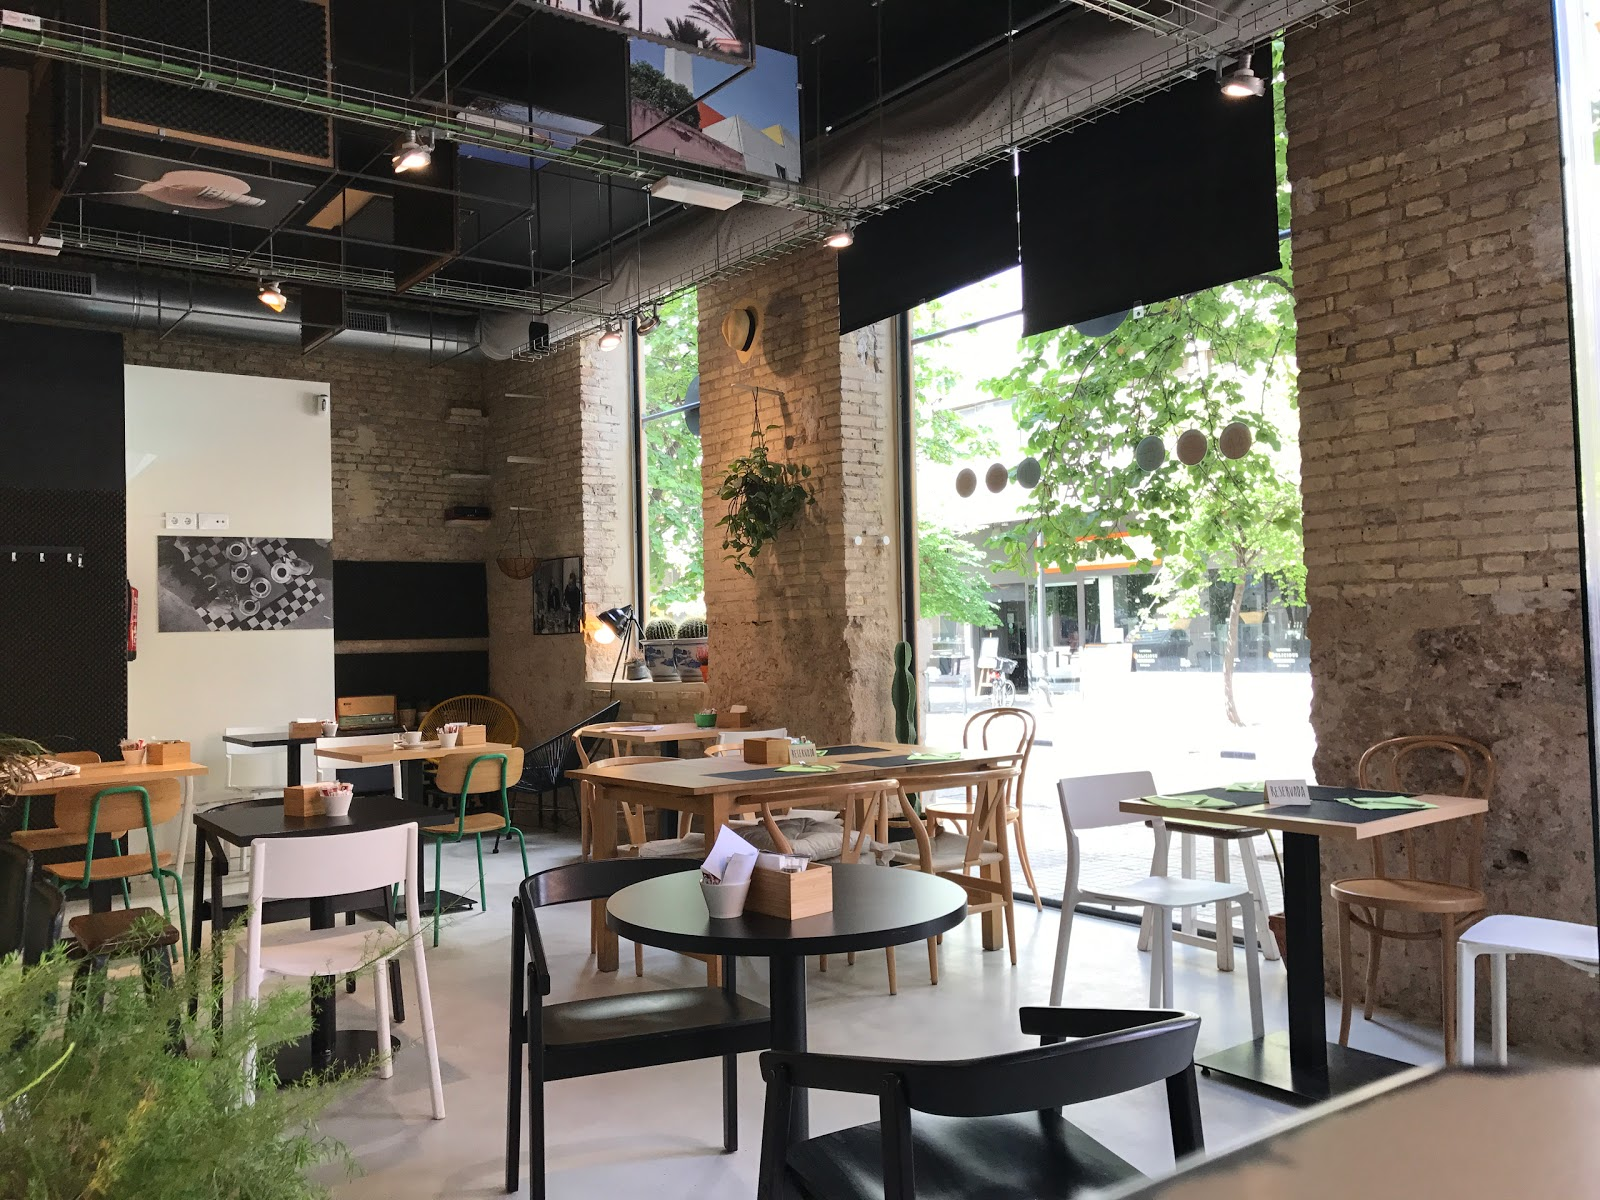 La Roda espai: A Work-Friendly Place in Valencia